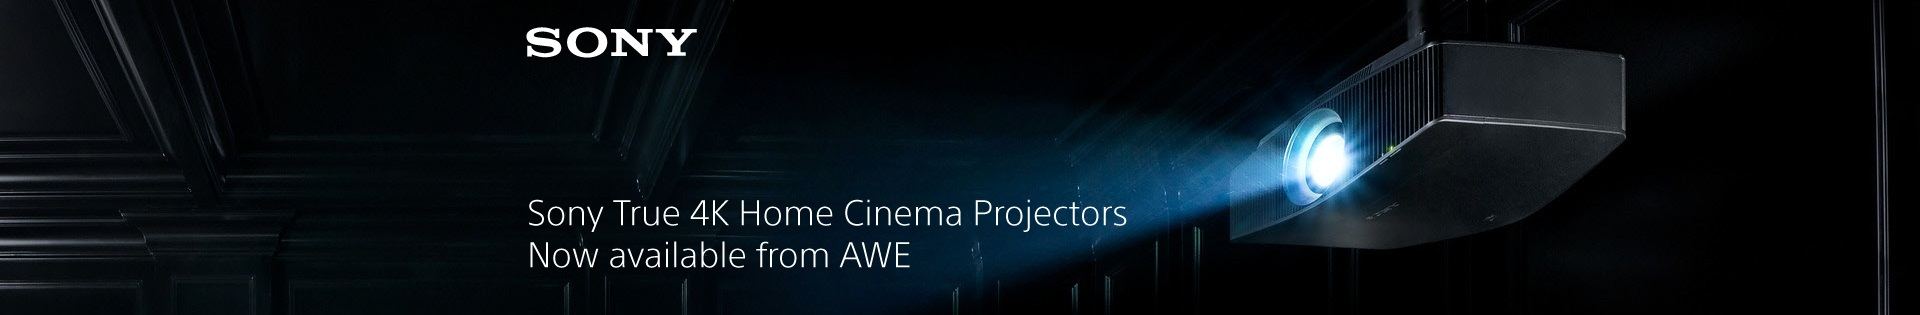 Sony Projectors Now At AWE